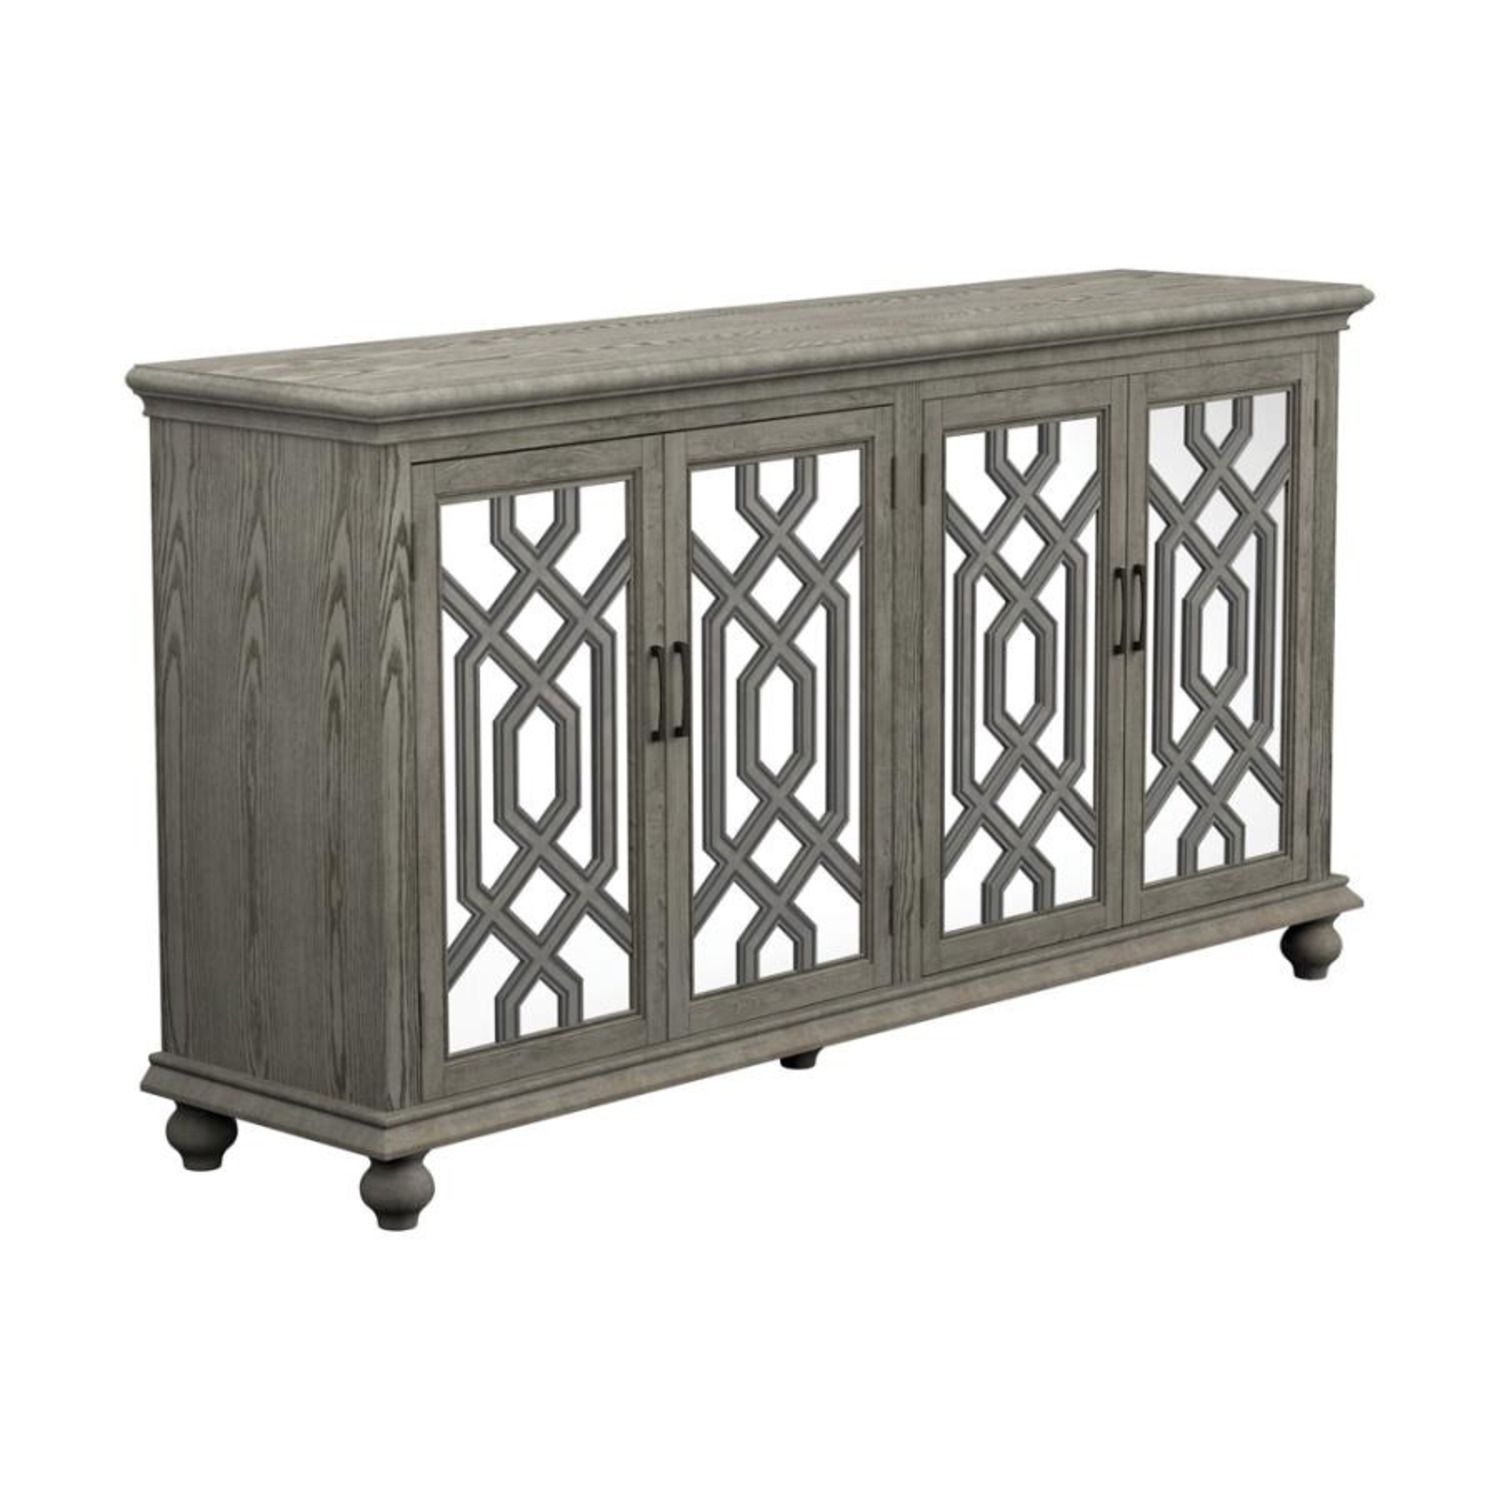 Accent Cabinet In Antique White W/ Bronze Details - image-0